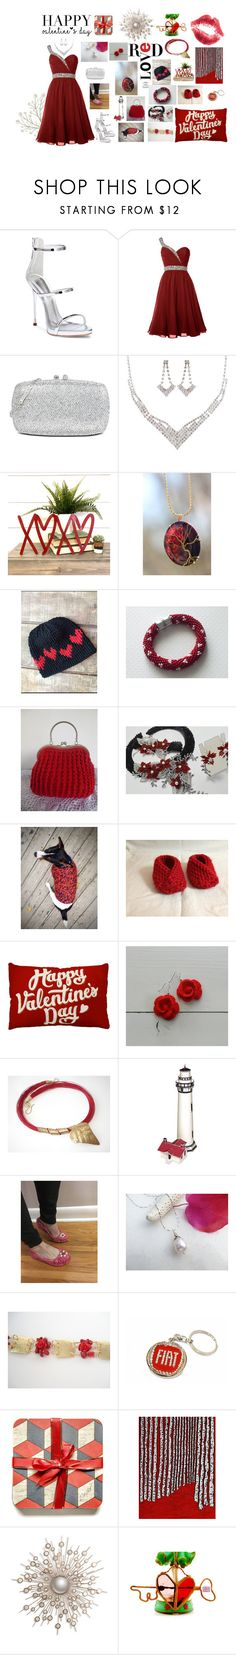 """Happy Valentine's Day Gifts"" by monique-eves ❤ liked on Polyvore featuring interior, interiors, interior design, home, home decor, interior decorating, Giuseppe Zanotti, Love Moschino and Kraus"